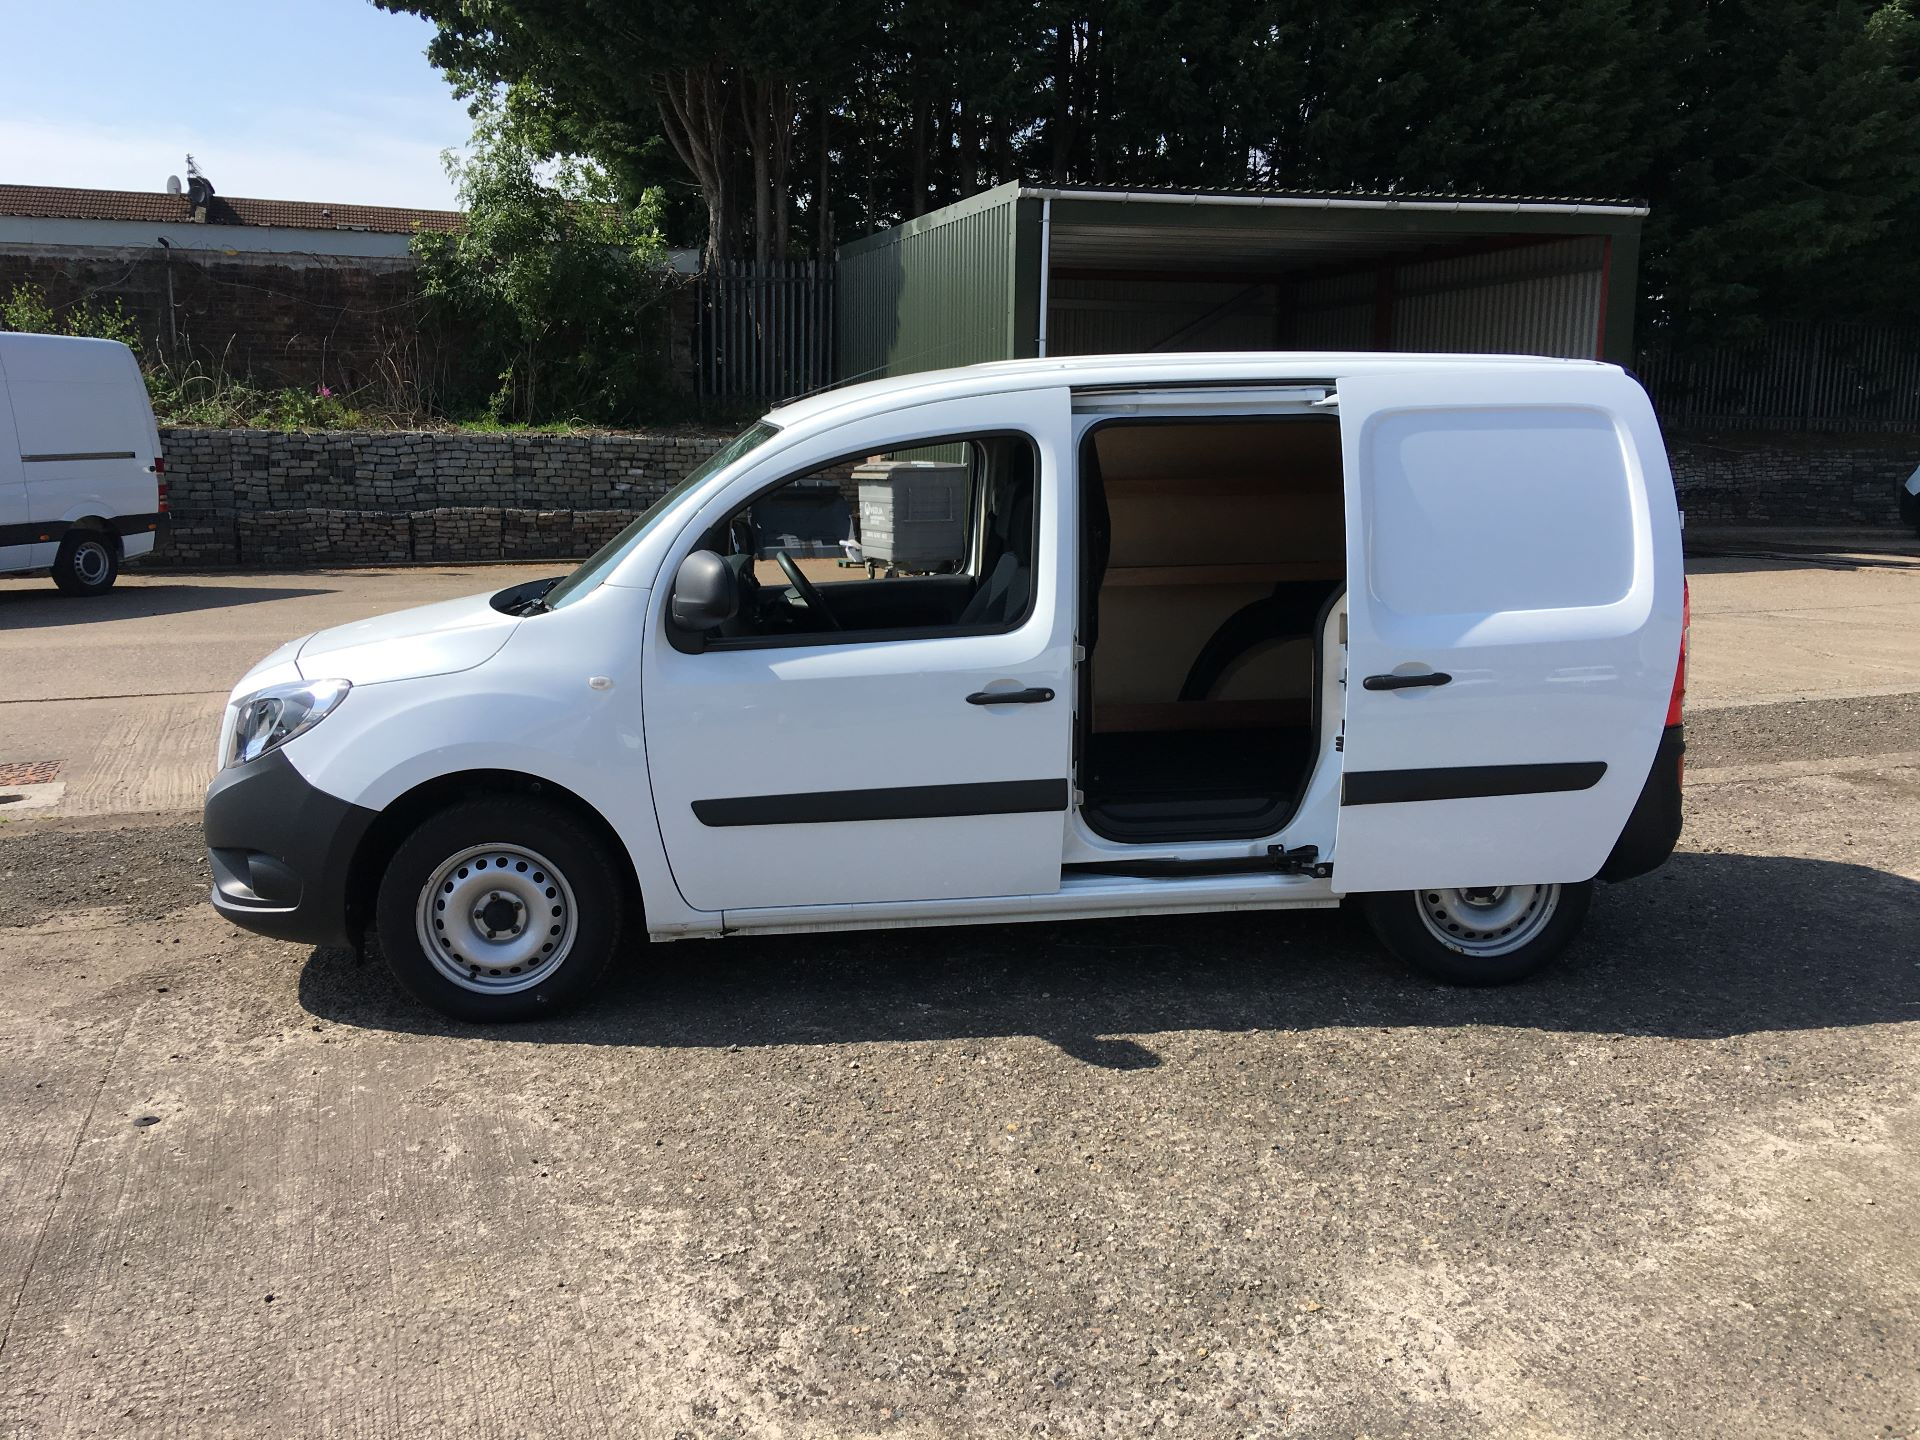 2018 Mercedes-Benz Citan LWB 109 CDI BLUE EFFICIENCY VAN EURO 5/6 (SF18VUO) Image 20